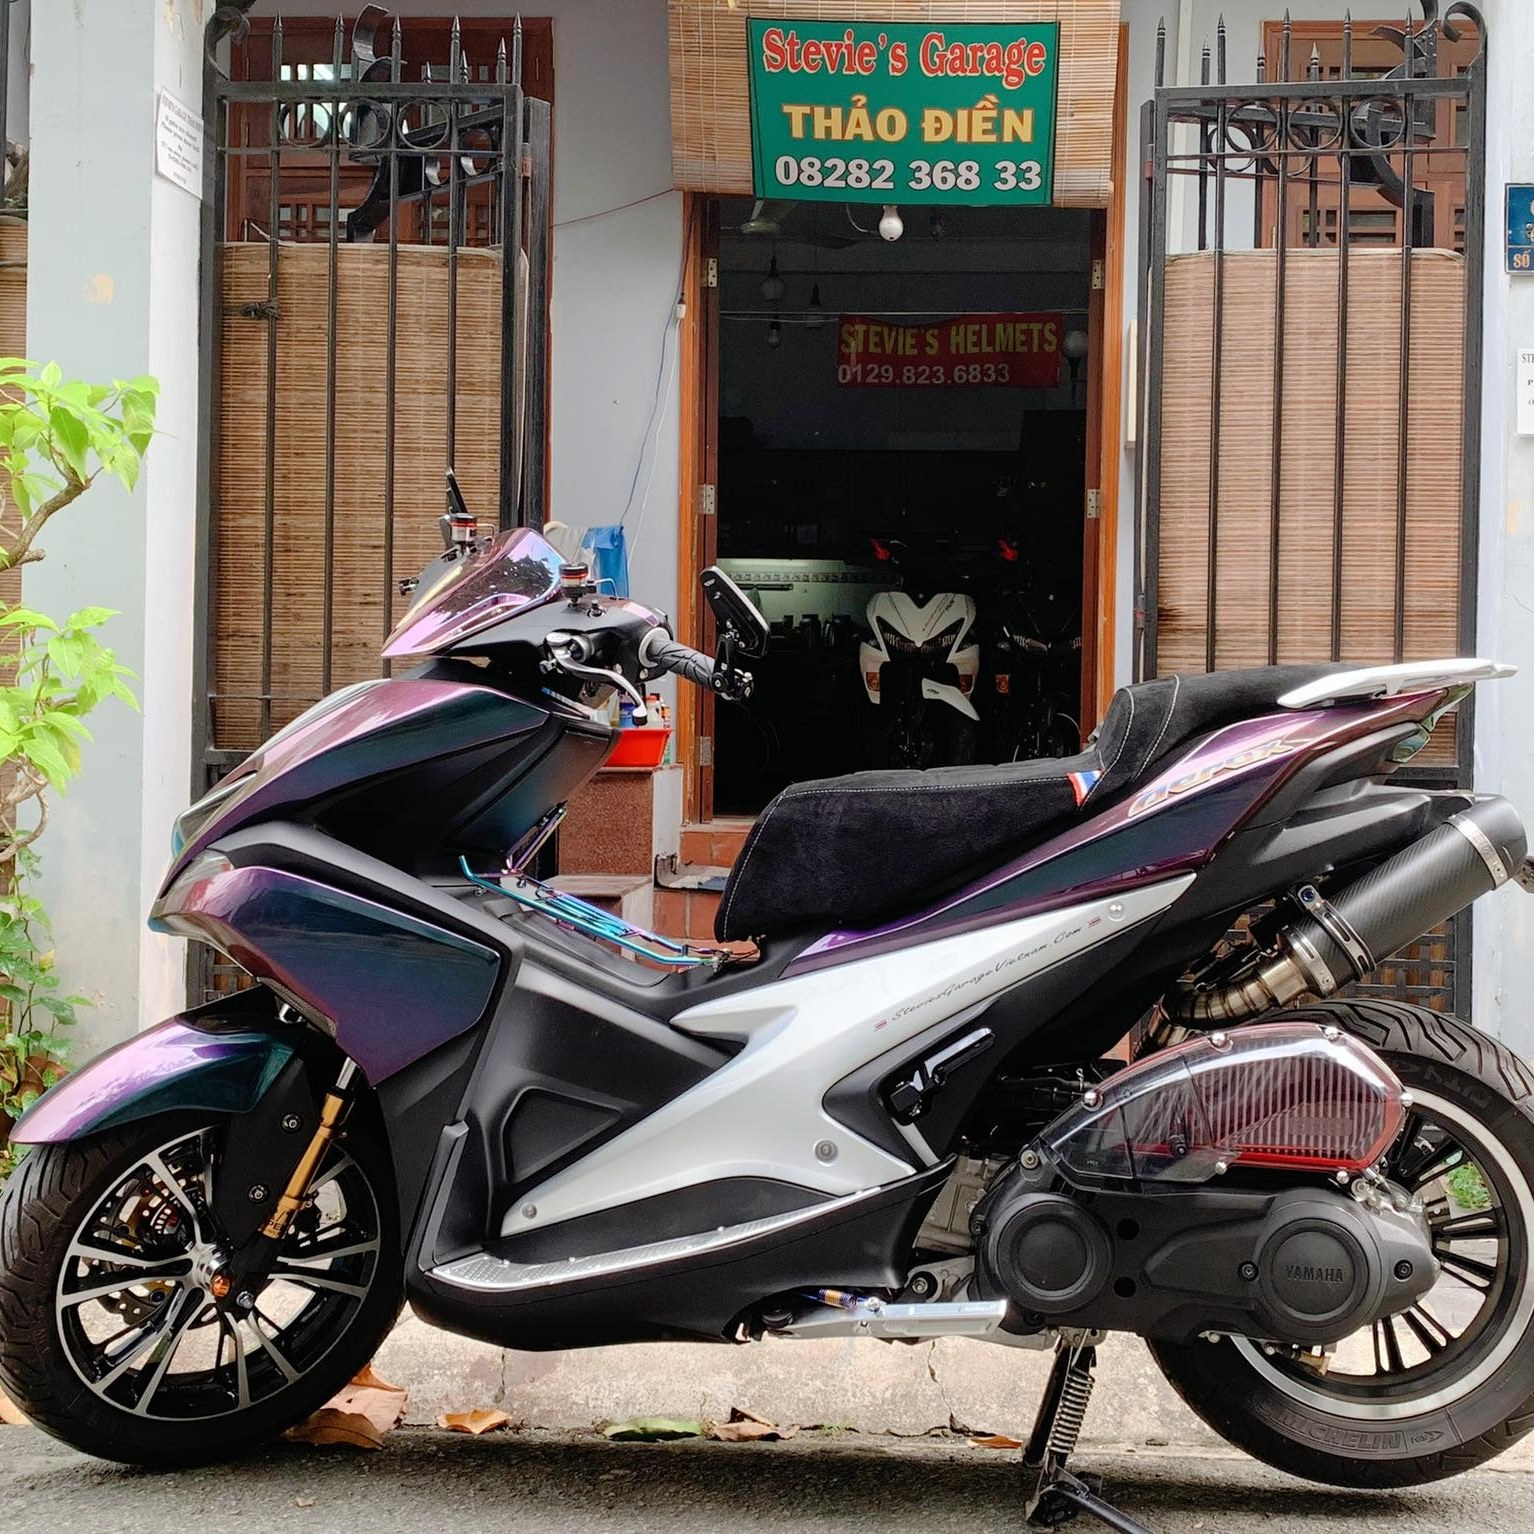 Image of the storefront of Stevie's Garage in Vietnam